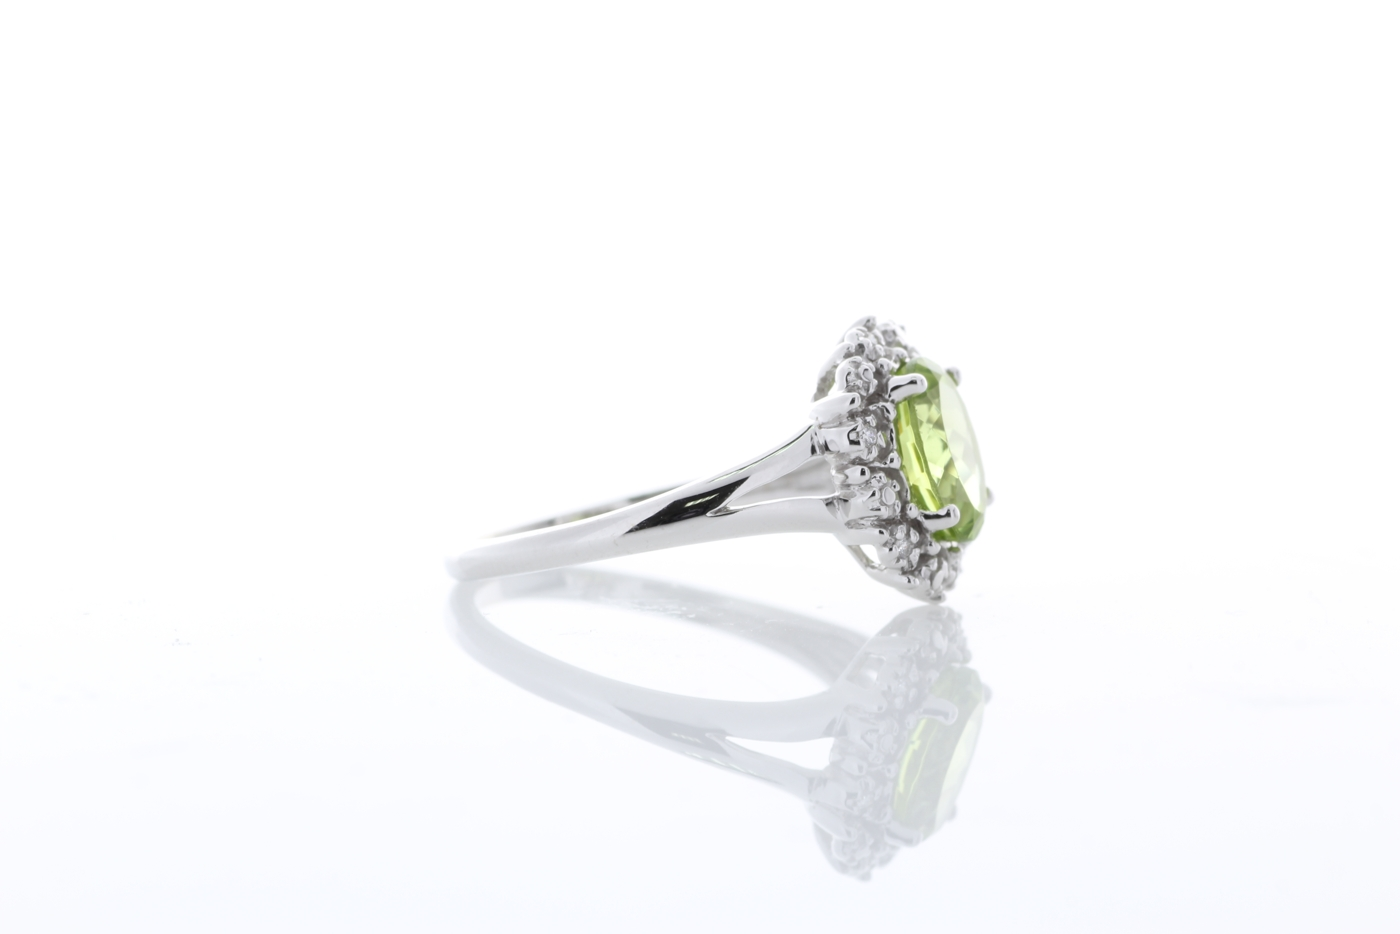 Lot 57 - 9ct White Gold Cluster Diamond And Peridot Ring 1.40 Carats